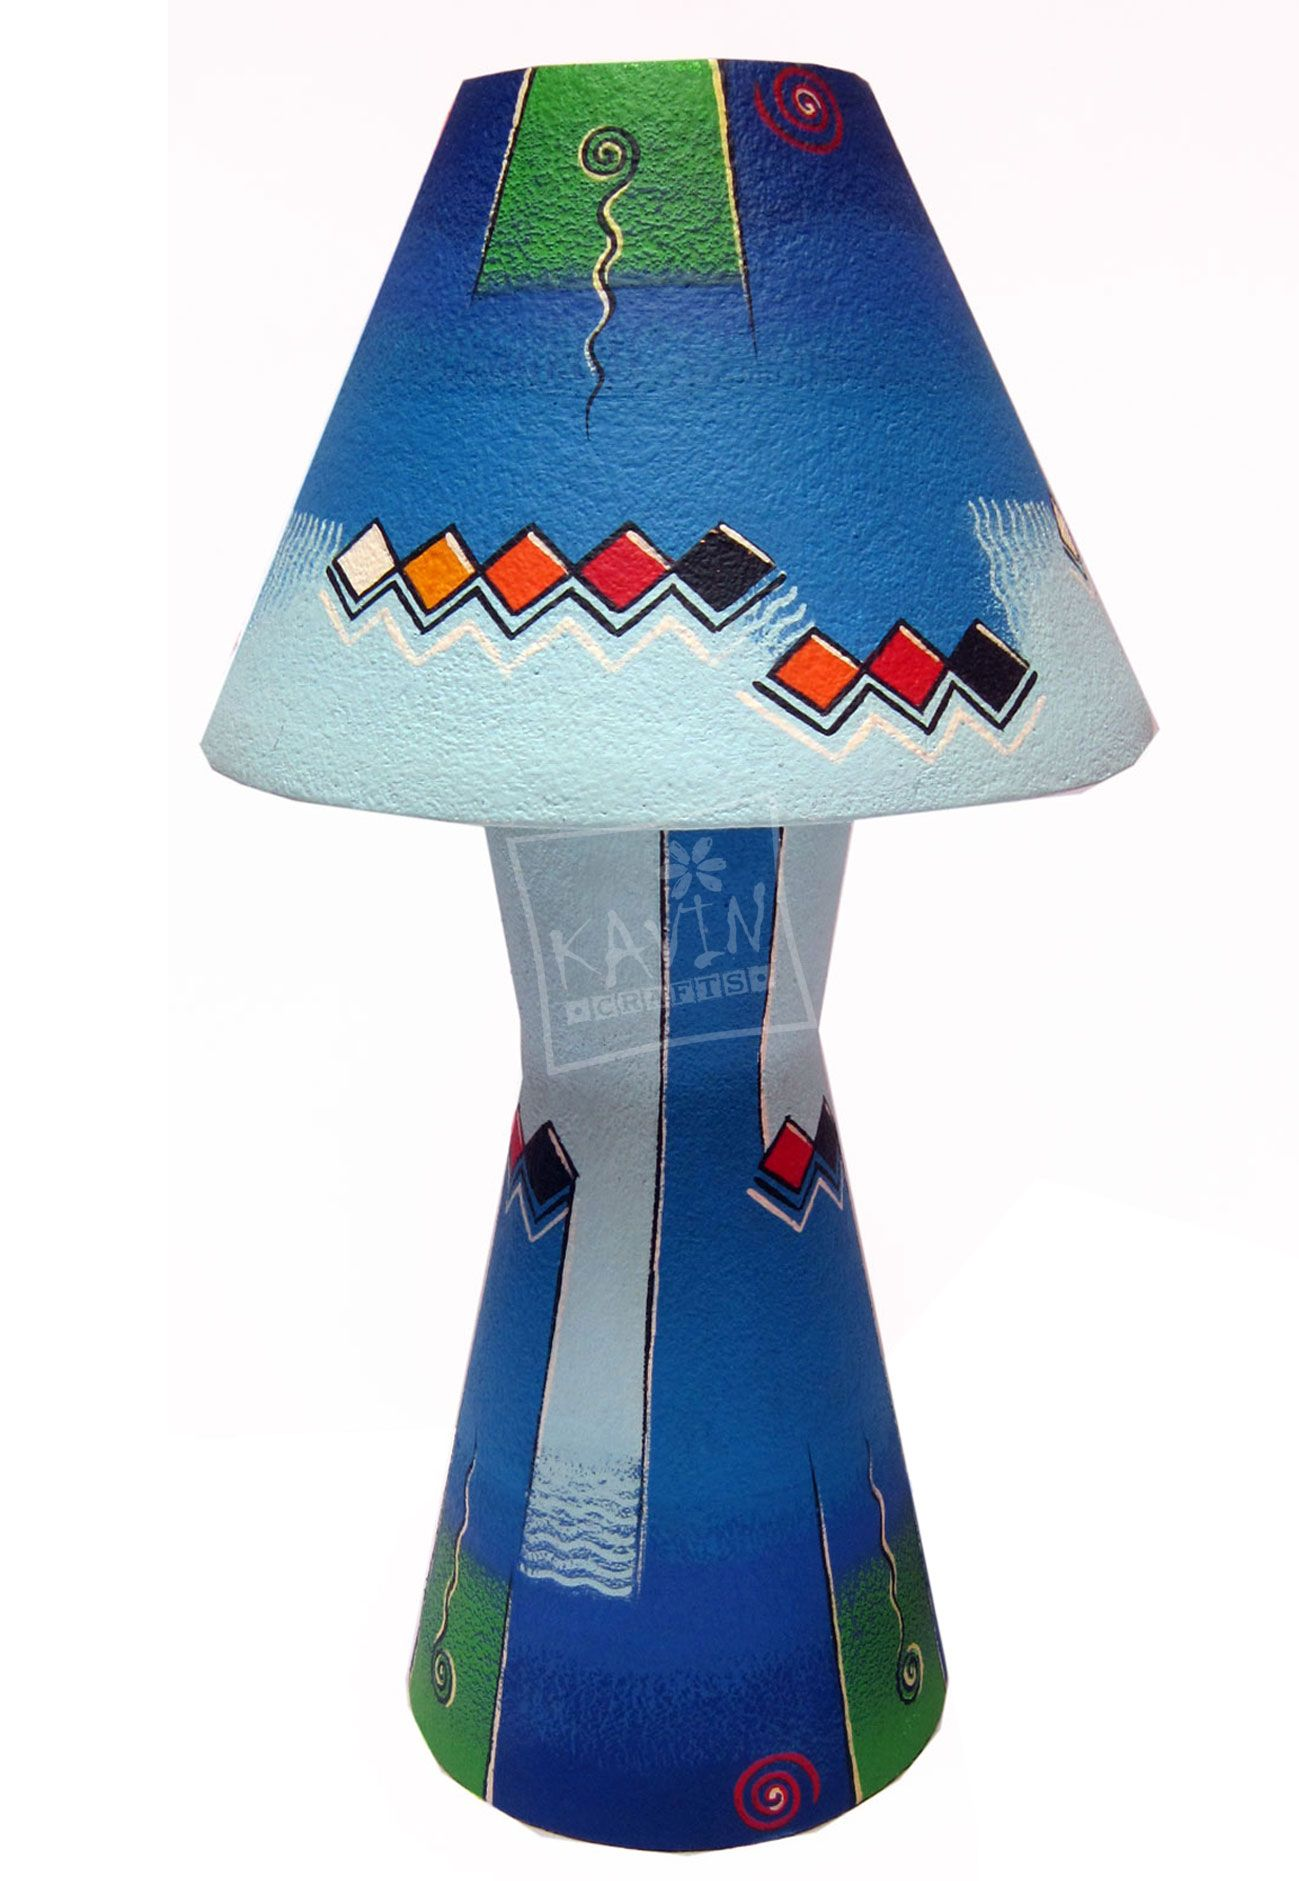 Night lamps india - Decorative Lamps Lights Shopping Online From Largest Home Decor Store Craft Shops India Here You Get Night Lamps Wall Lights With Decorative Design At